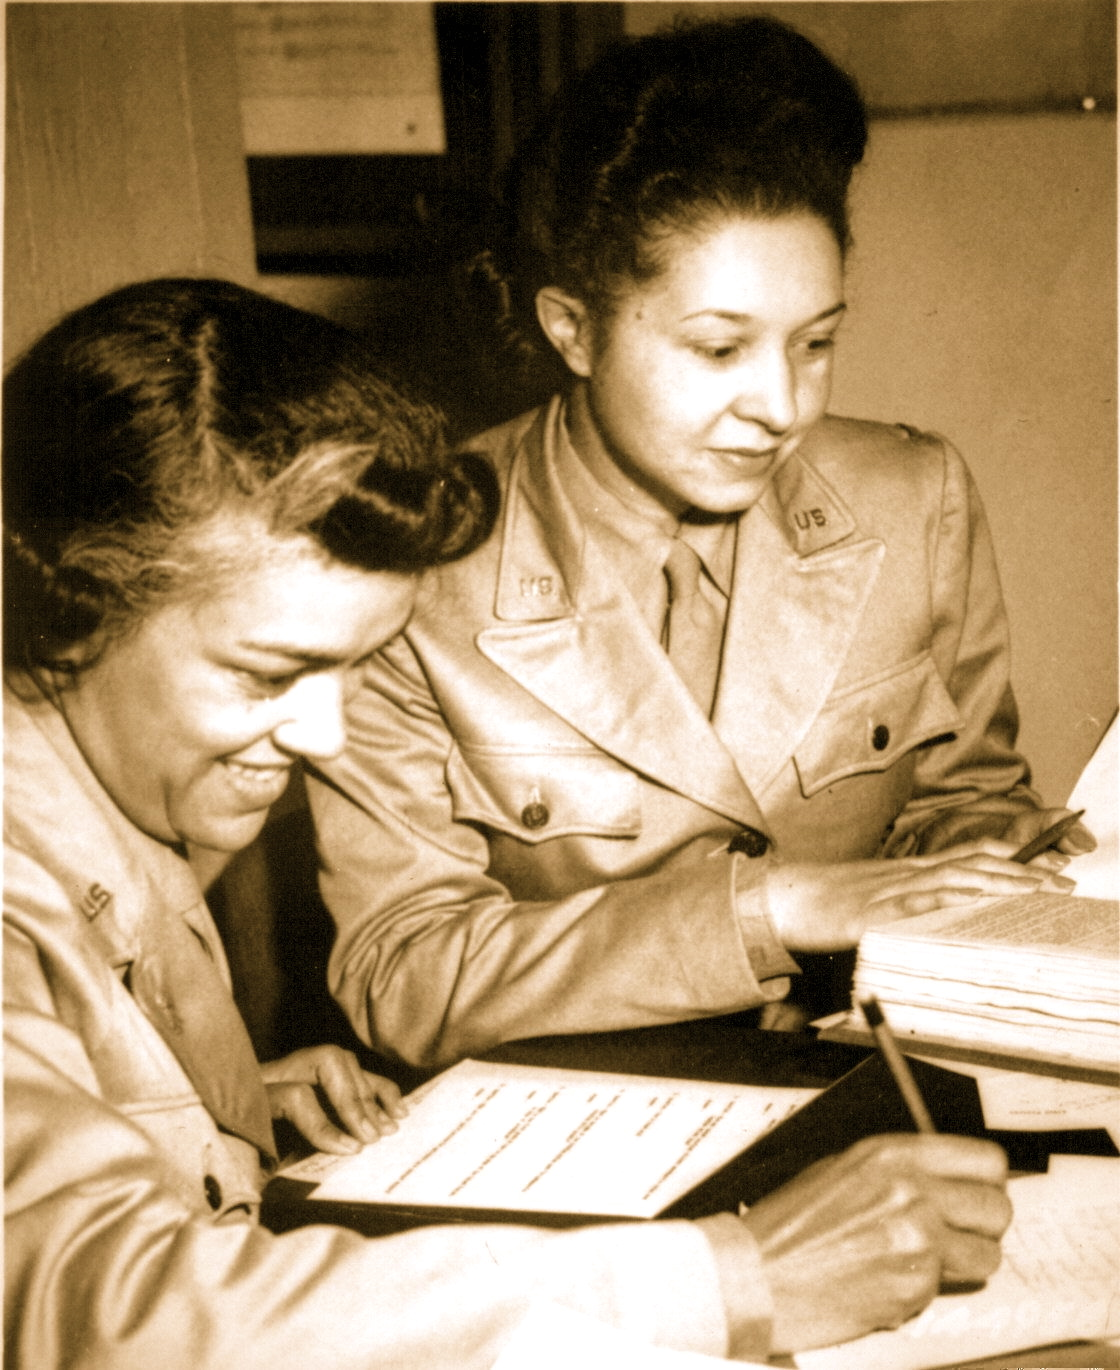 7-WAAC's at work in Temp. Bldg. 'M', 26th Street, Washington, DC Headquarter. Left to right; Lts. Harriet West and Irma Cayton, doing their recruiting schedule report in 1942 (c. National Archive)